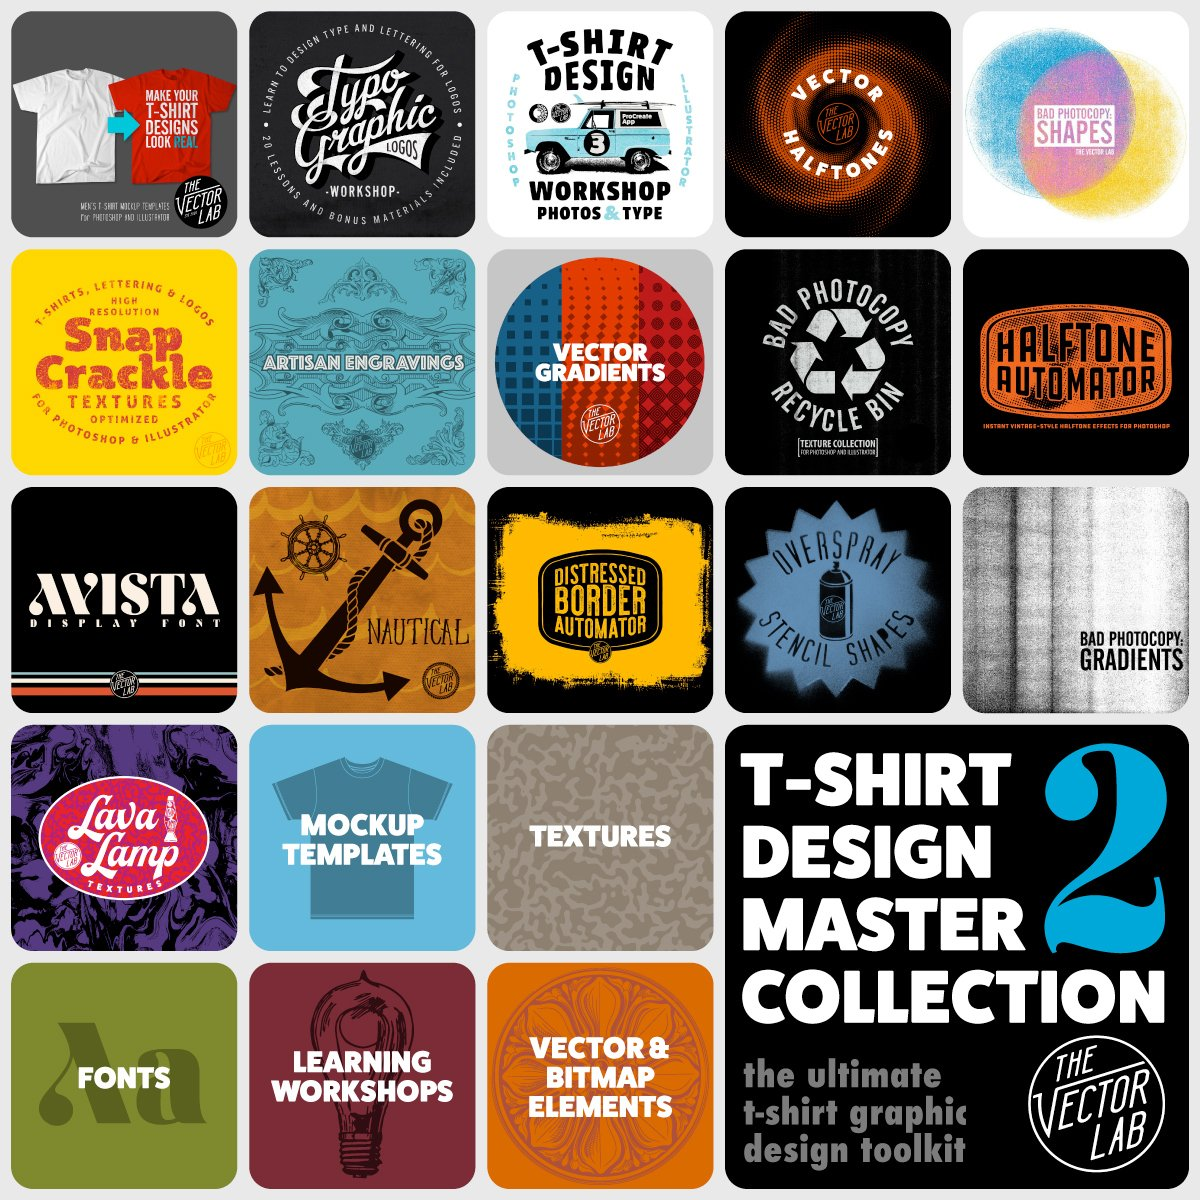 T-Shirt Design Master Collection 2